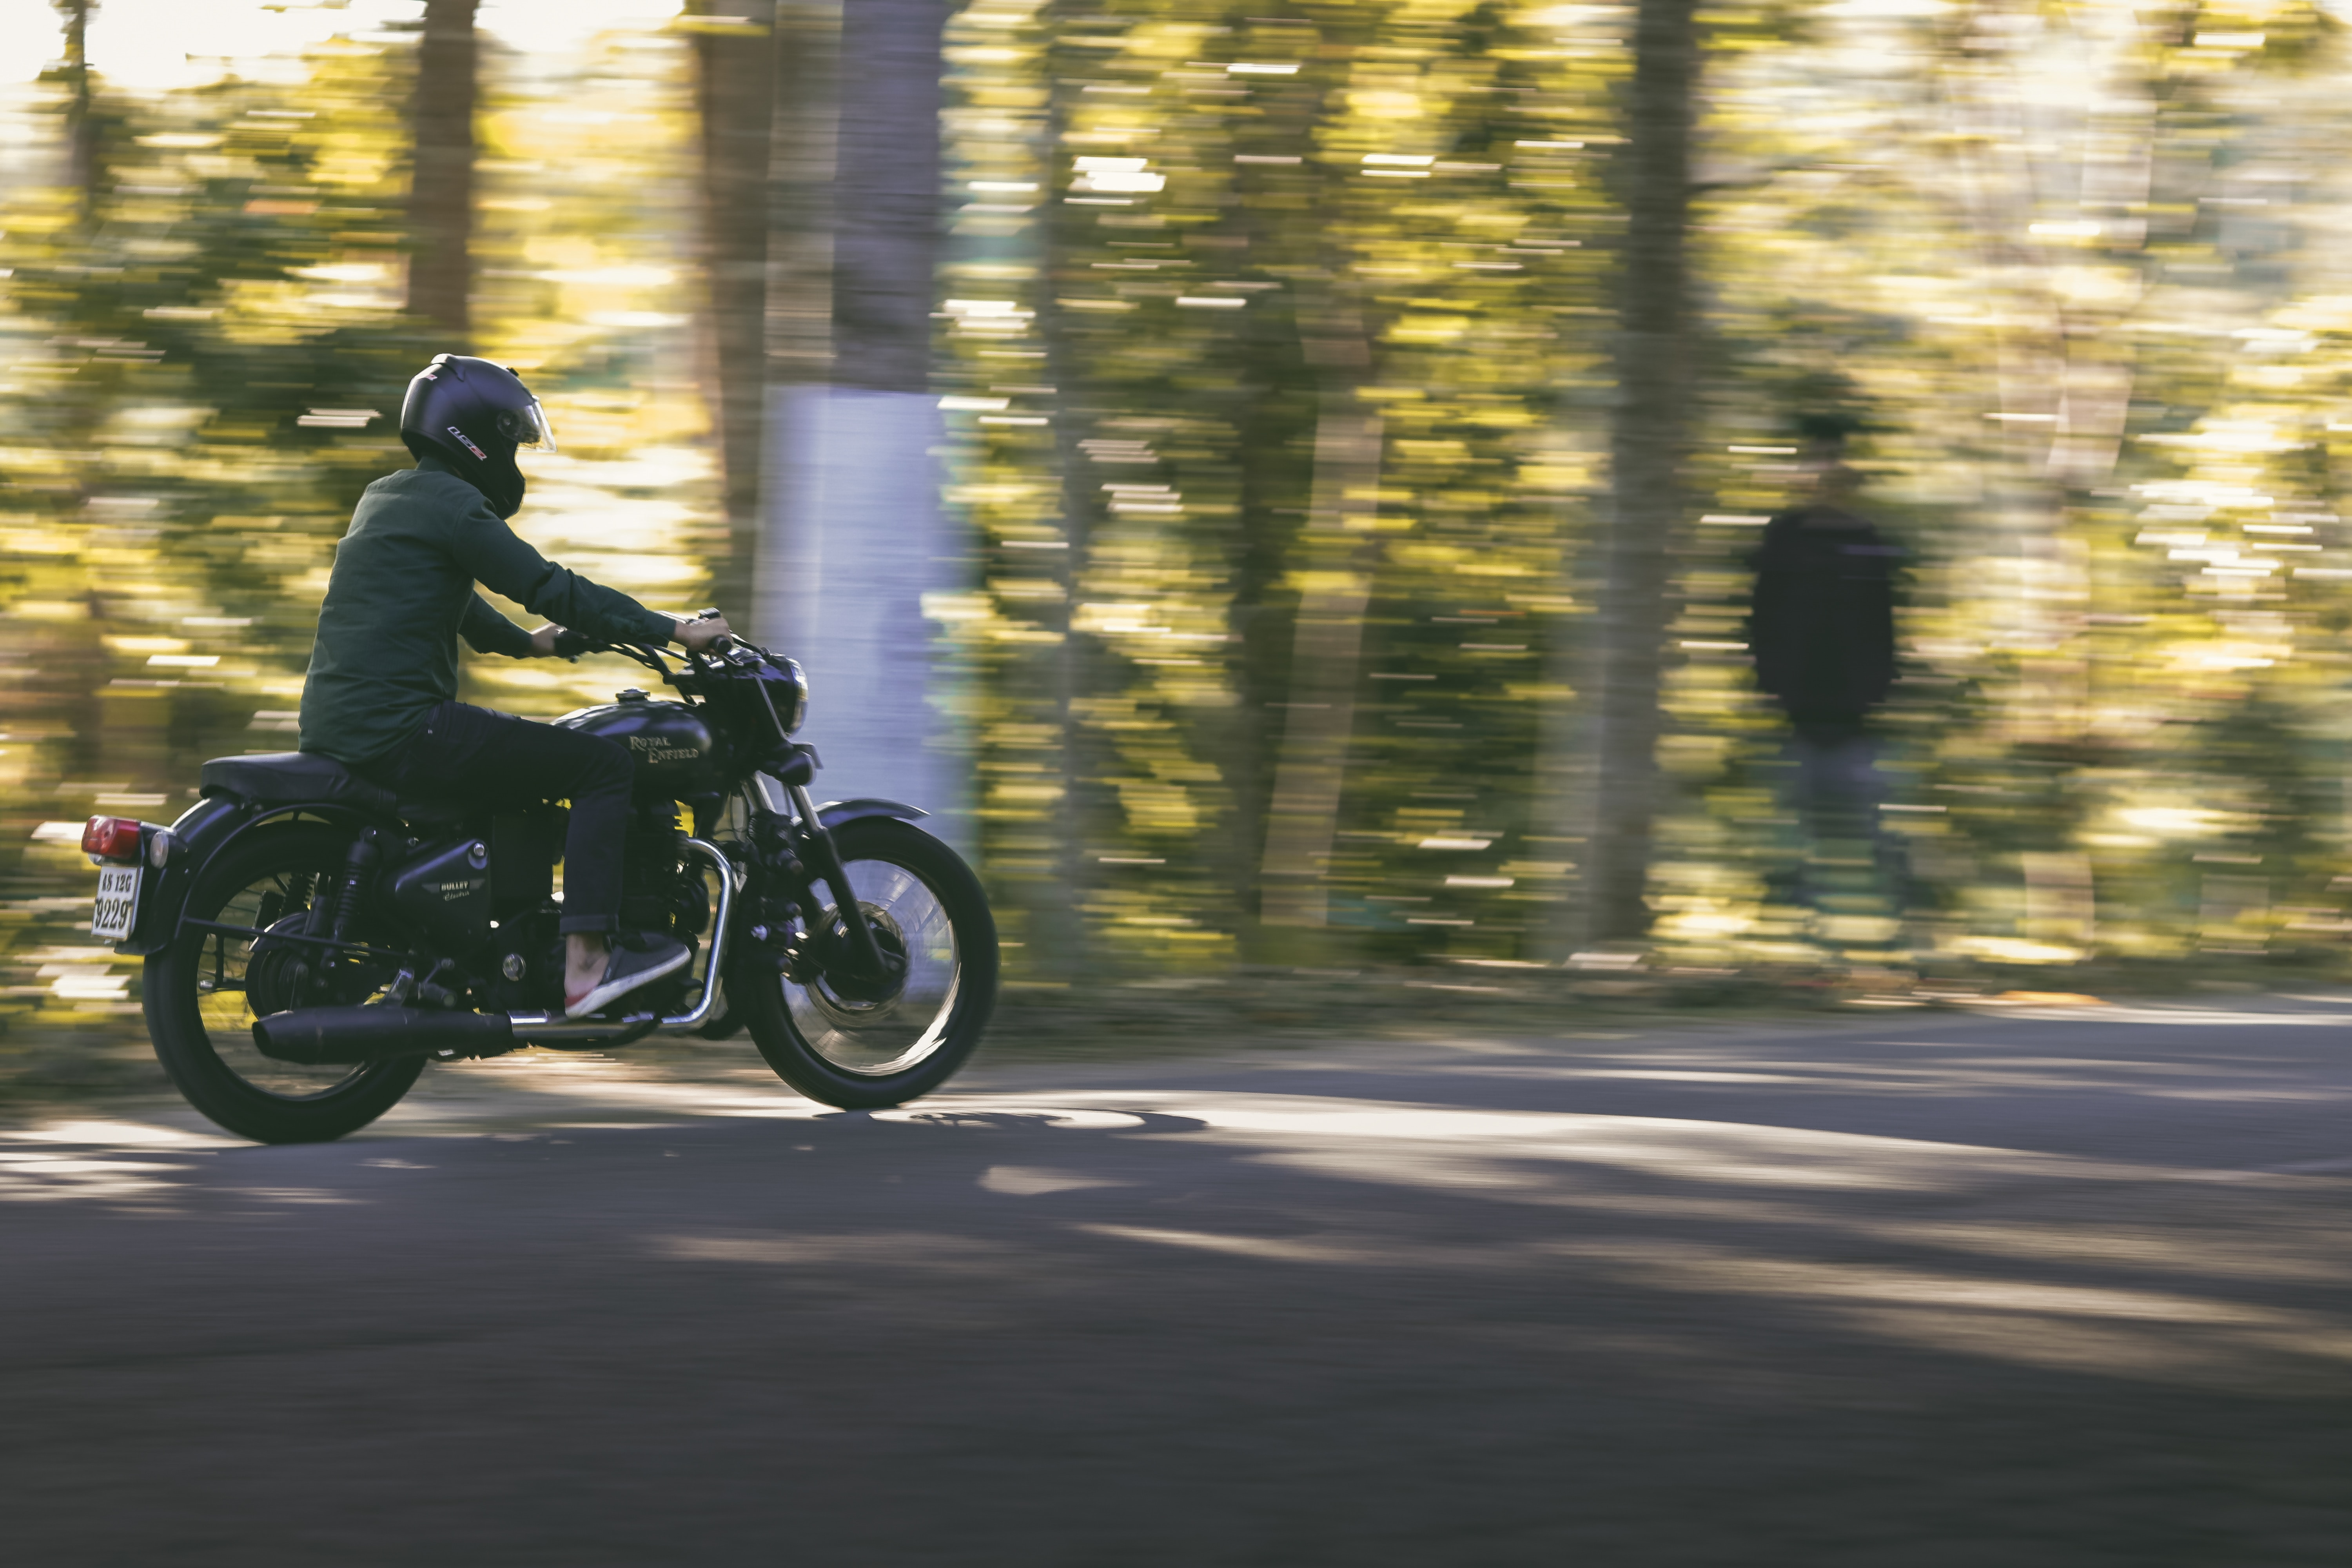 Lenses for Motorcycle Sunglasses: Everything You Need to Know